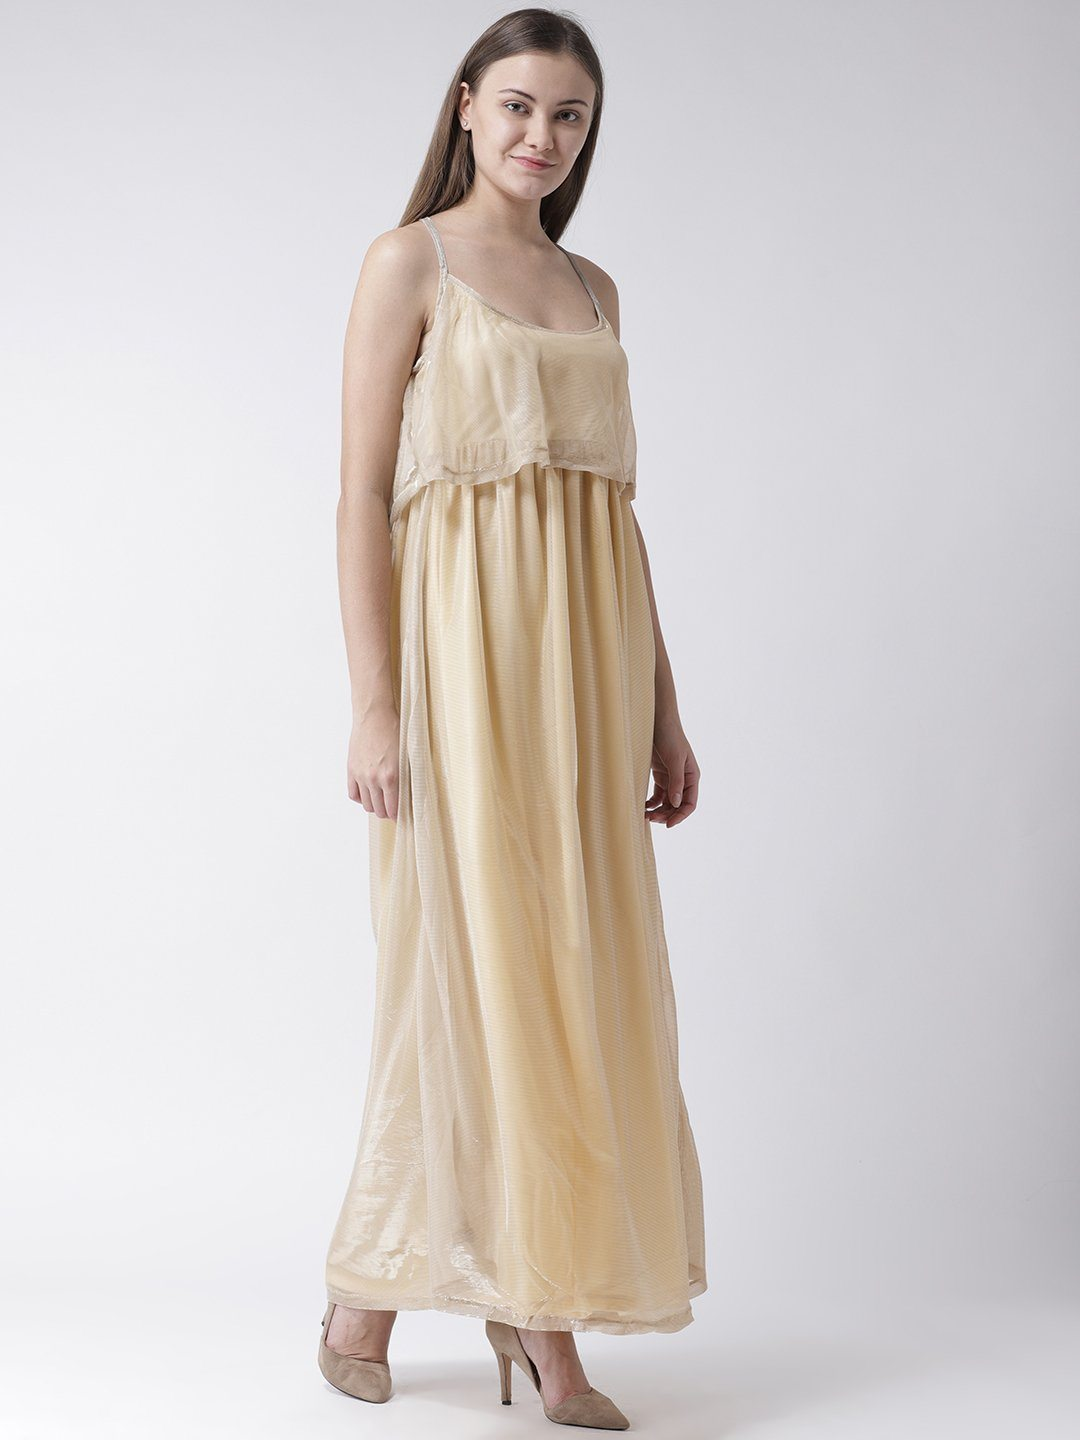 Shimmer Maxi tiered Dress in Gold